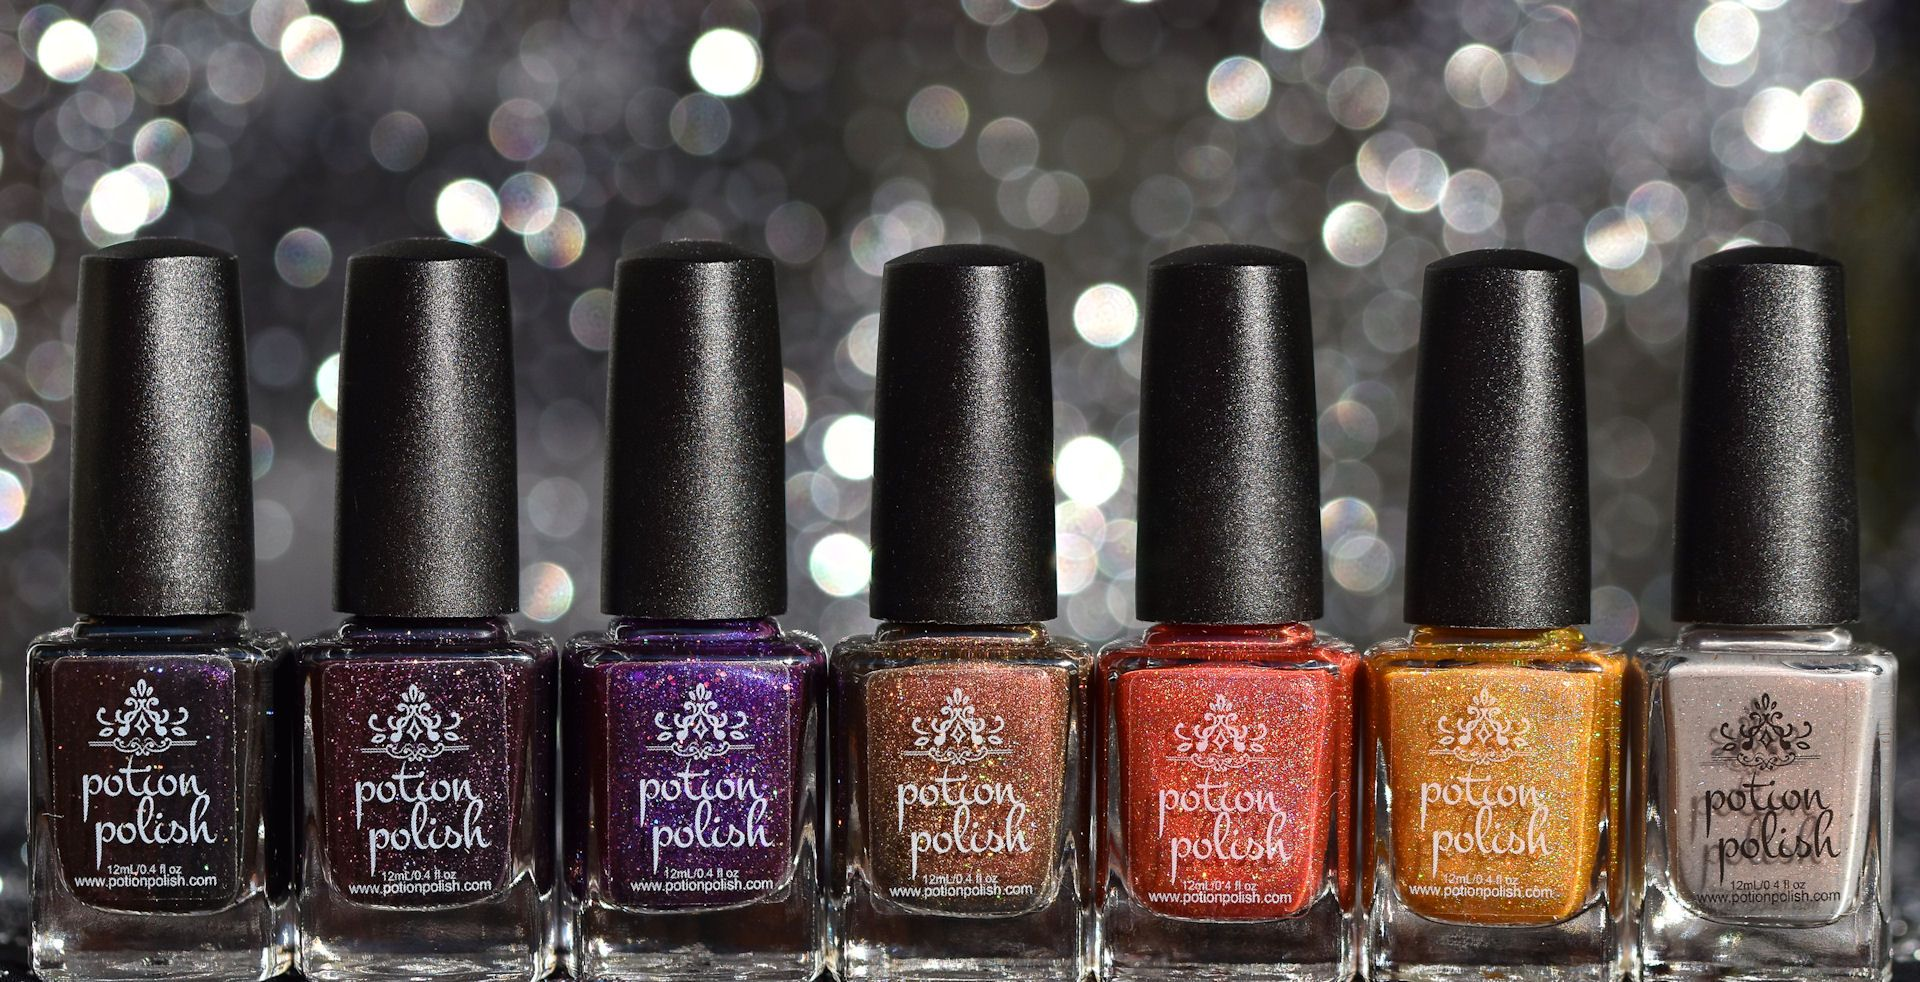 Some returning favorites from last year join the new shades for the season in our Hoodies and Hayrides Collection! Coming to potionpolish.com on October 7 at 1pm EDT